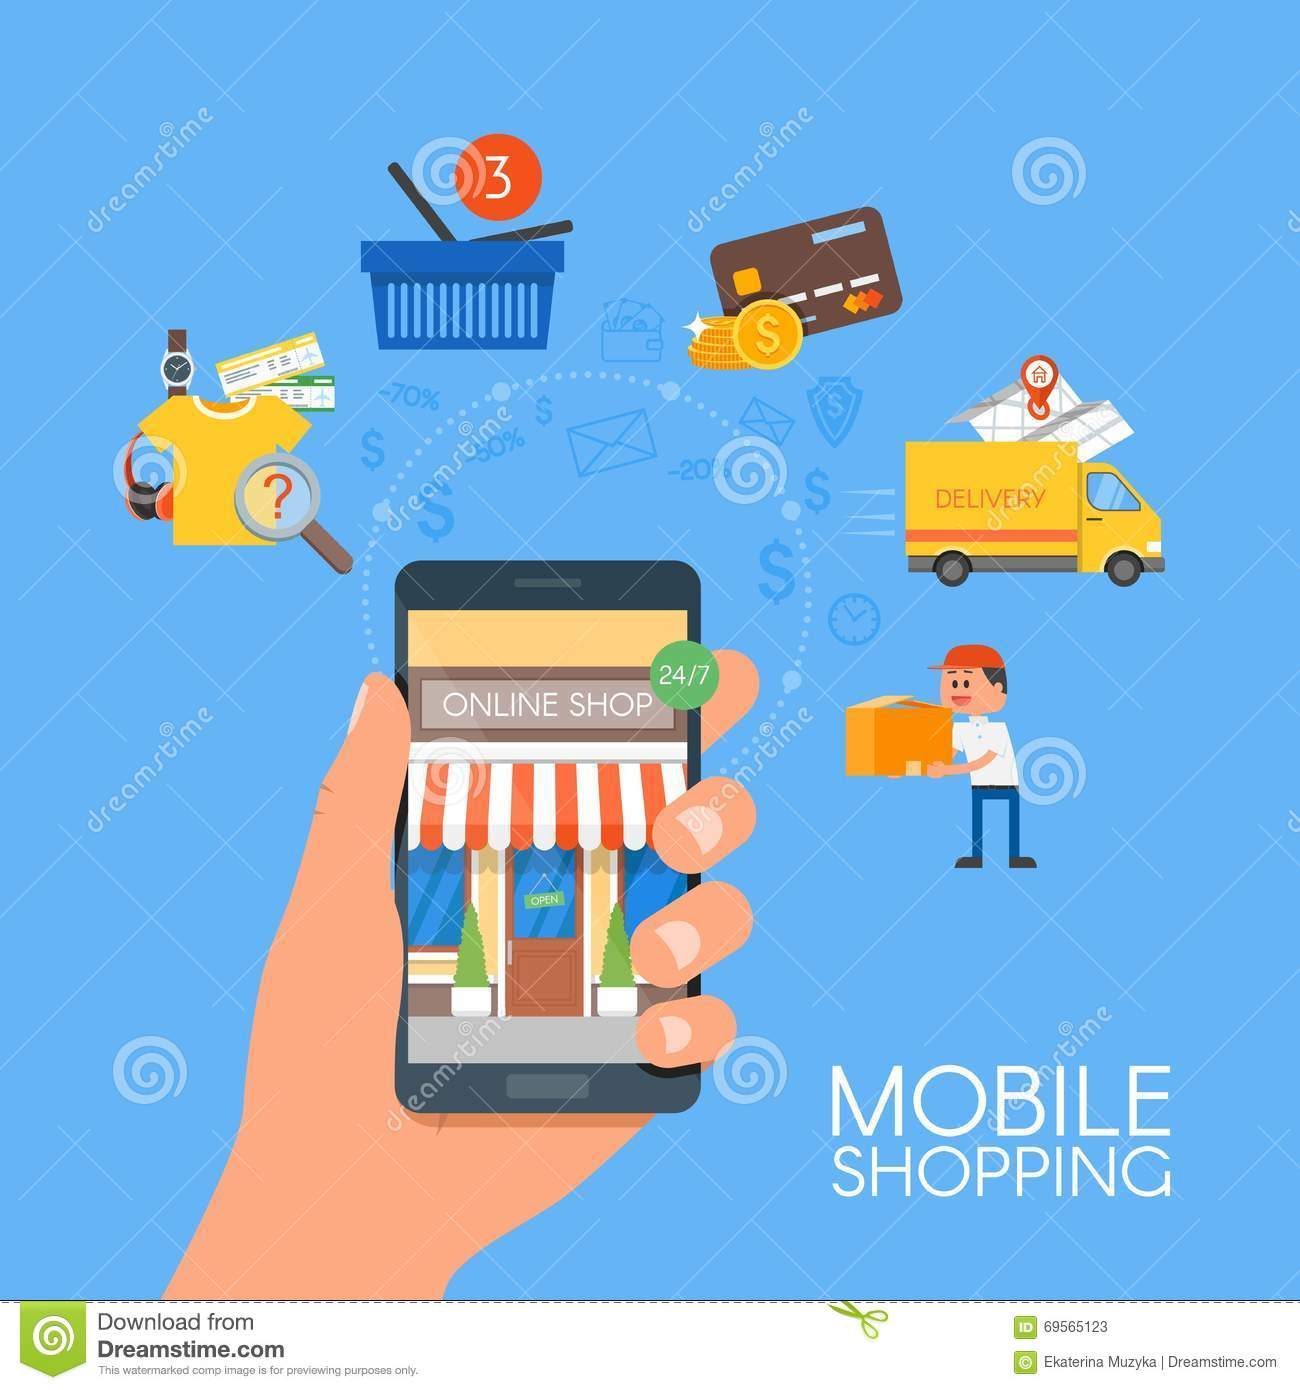 Online Shopping Mode Of Payment Online Mobile Shopping Concept Vector Illustration In